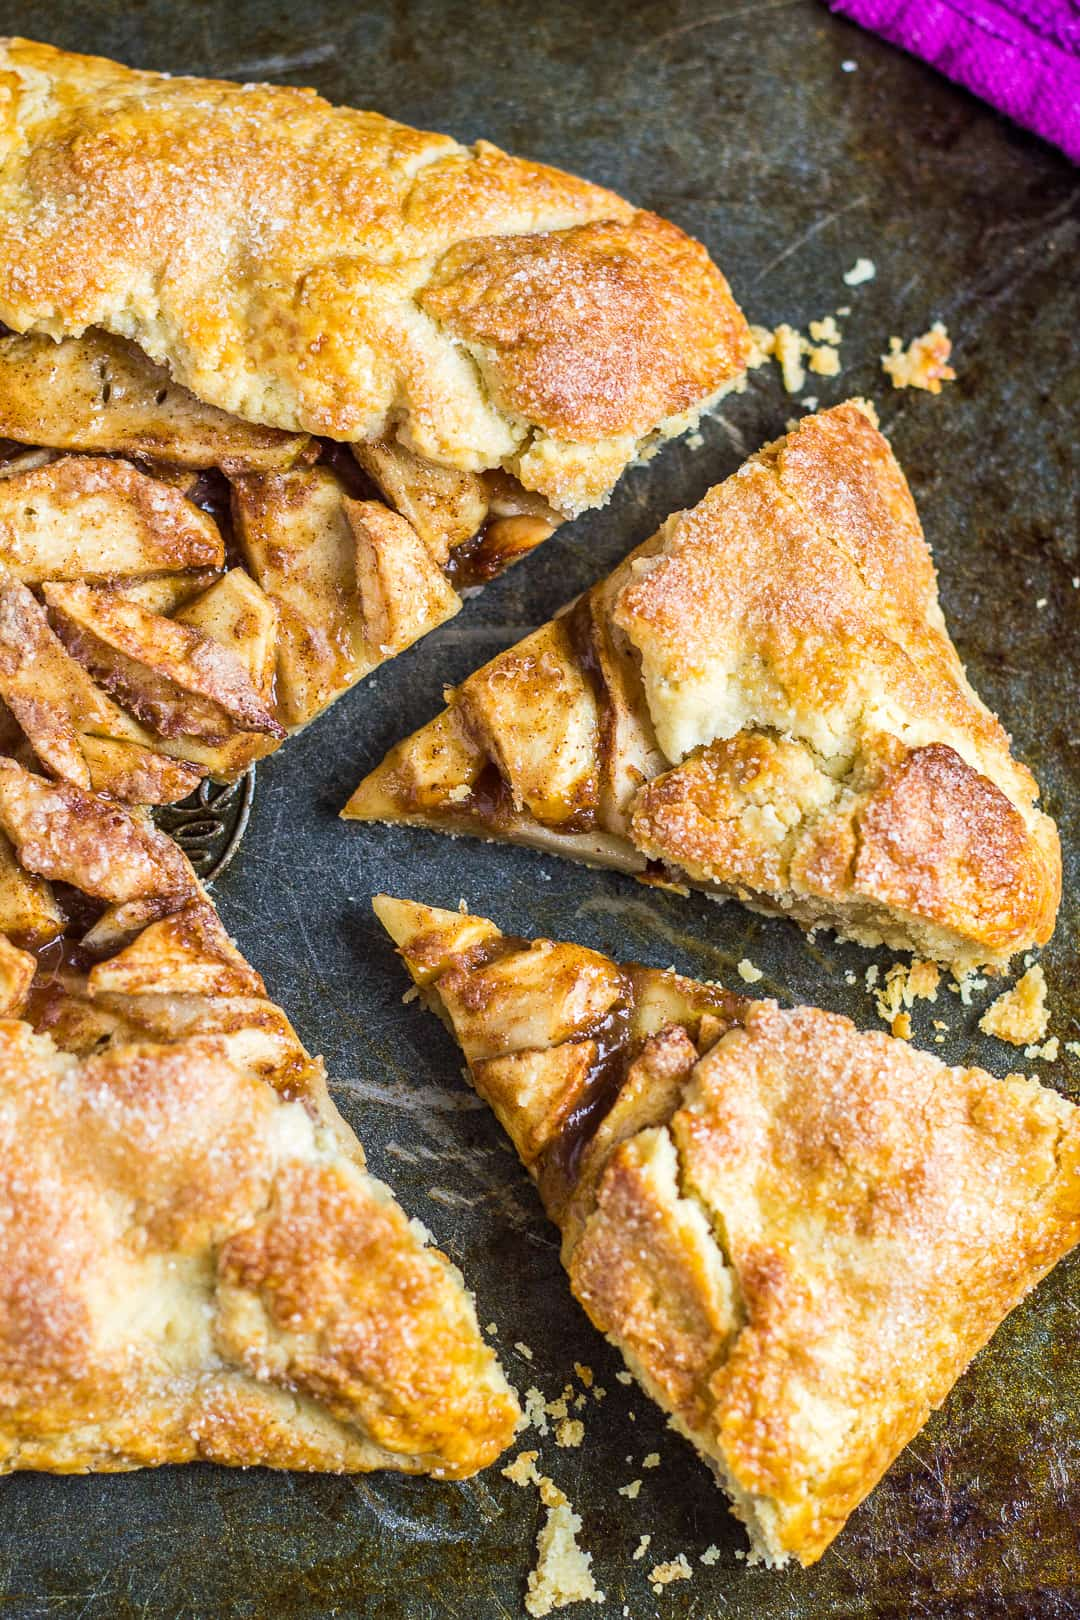 Overhead shot of homemade apple galette with two slices cut out on a baking tray.